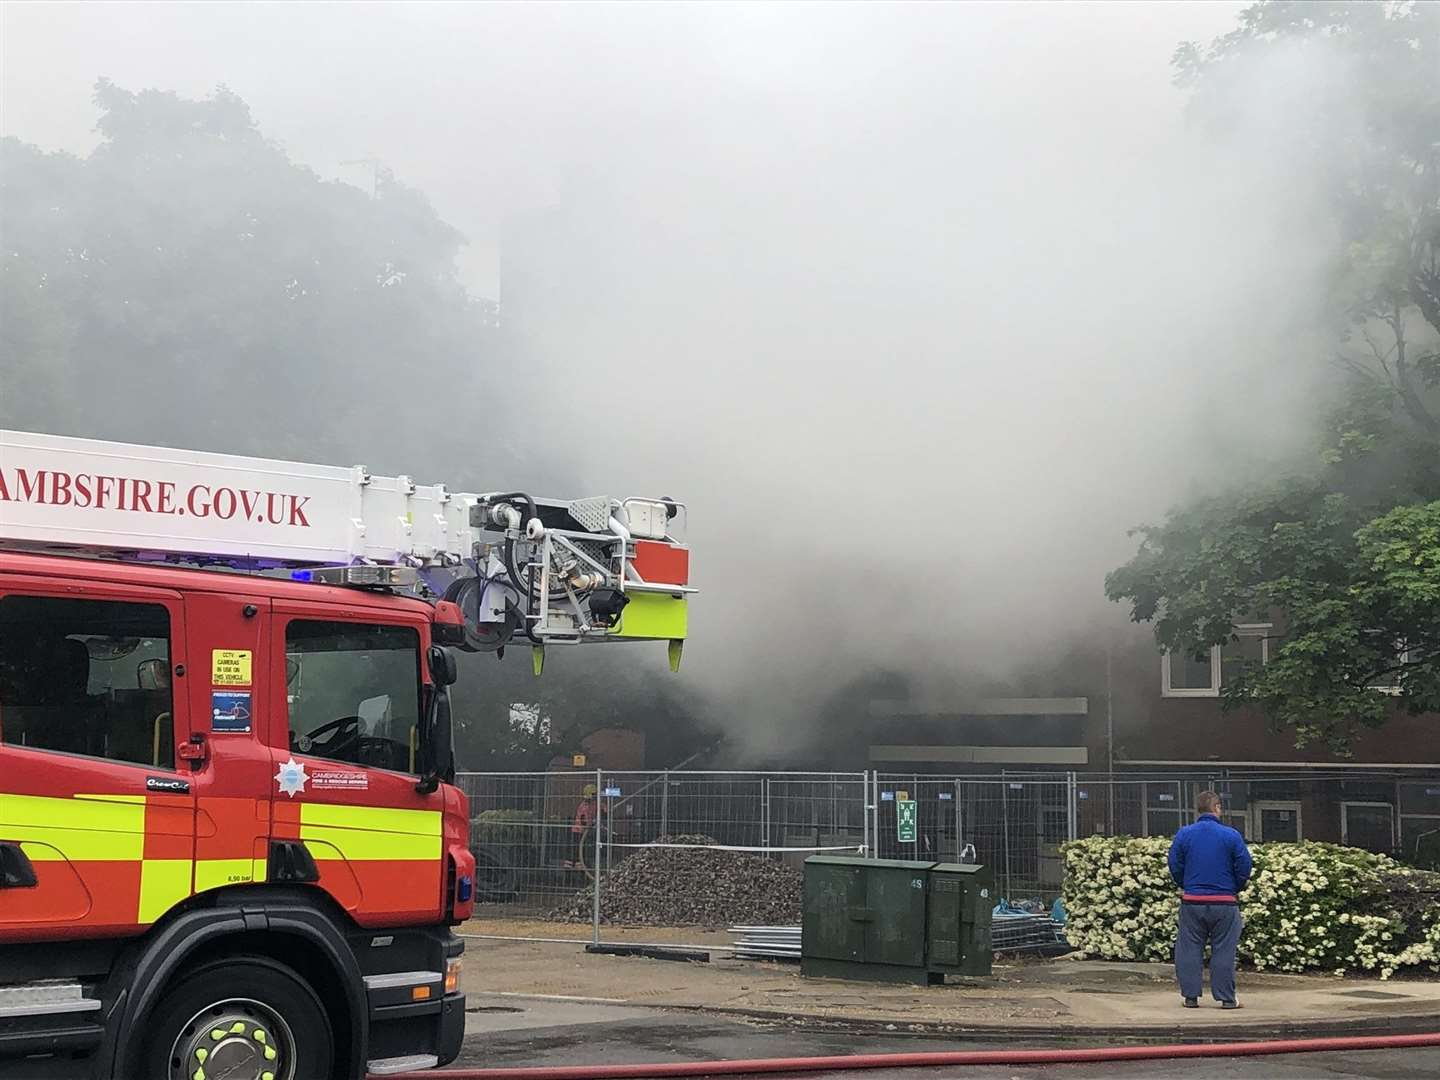 The scene of the fire at Kingsway flats in Arbury, Cambridge. Picture: Phil Rodgers (34507486)